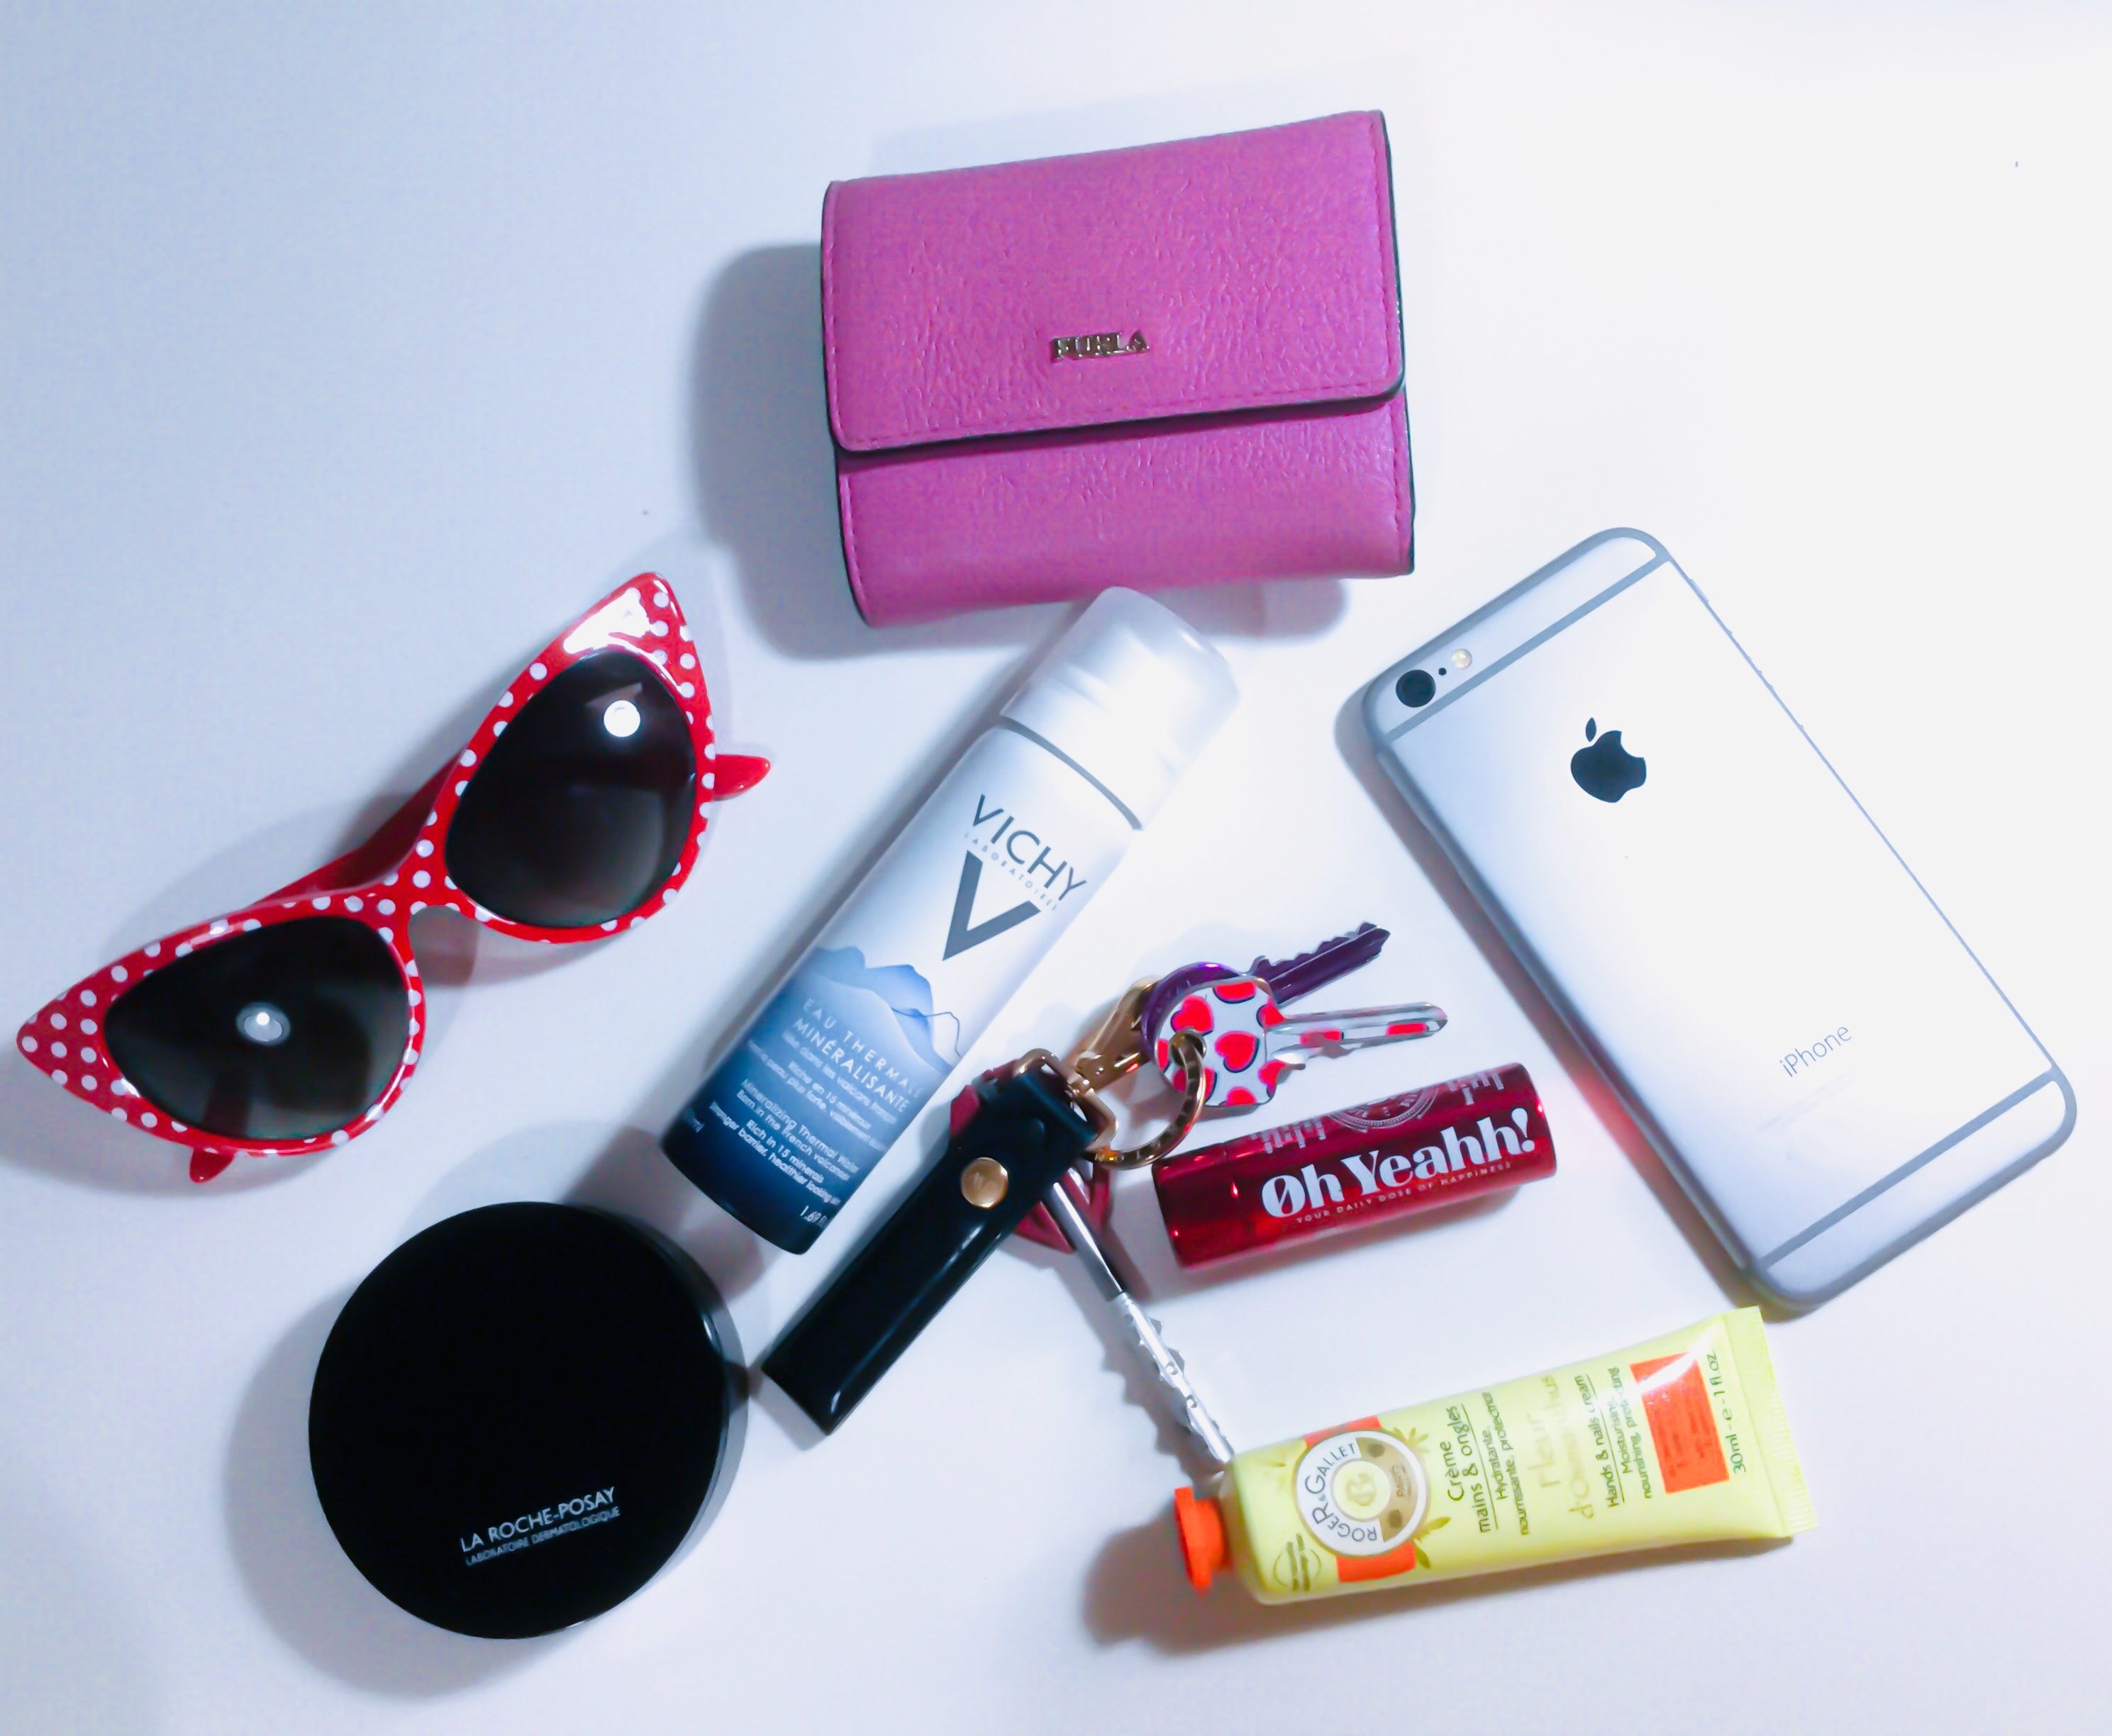 Momentsnstyle Fashion beauty and lifestyle Blog